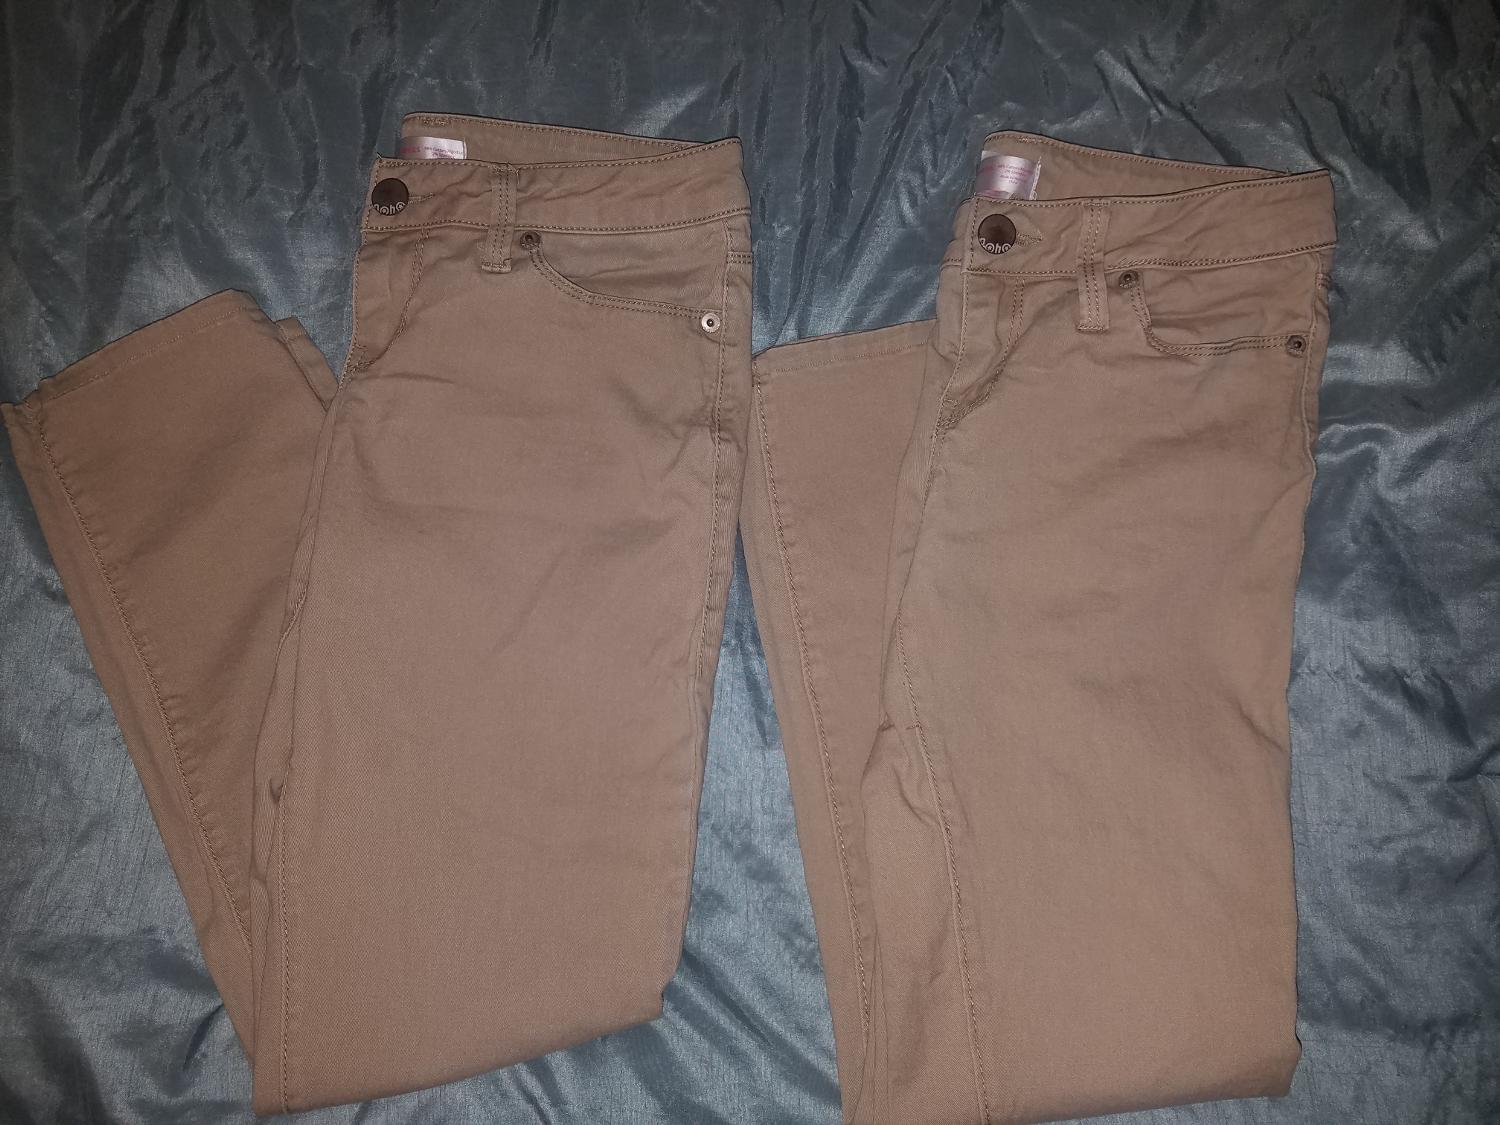 6009c217ab Girls Juniors Womens sz. 5 Skinny Khaki Pants Uniform Causey or Baker School